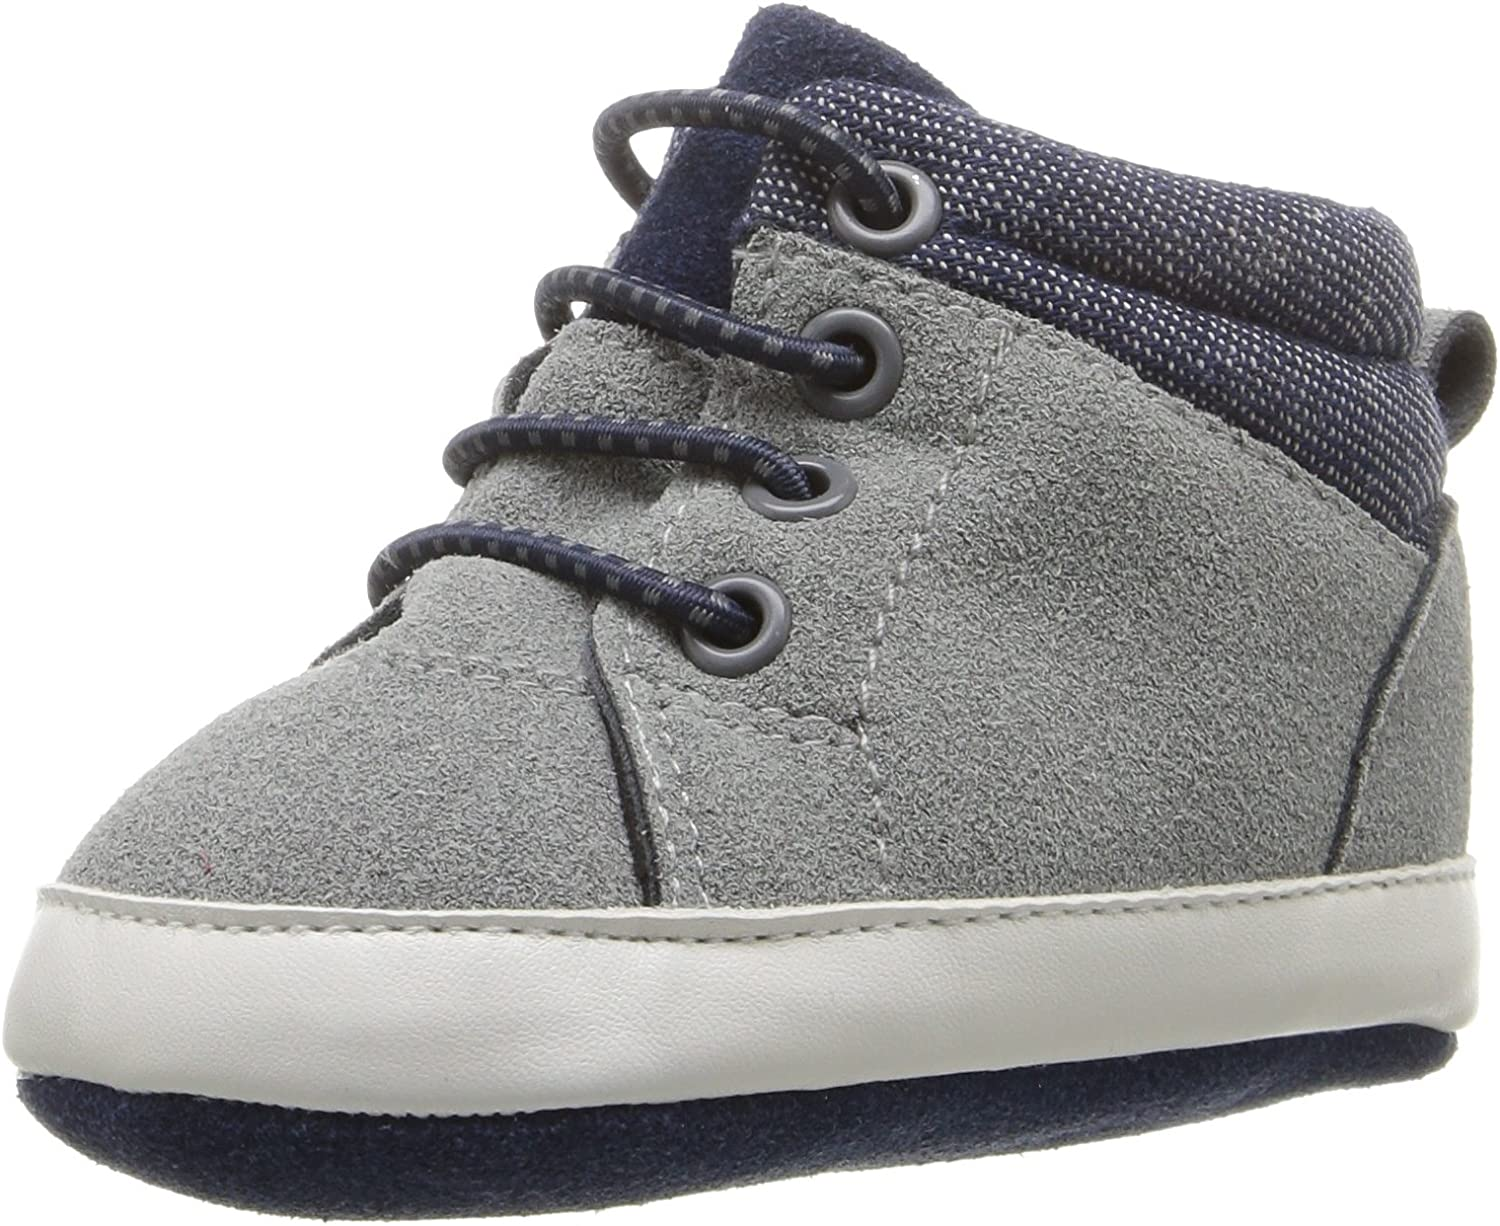 ABG OFFicial mail New life order Baby Menswear Sneaker